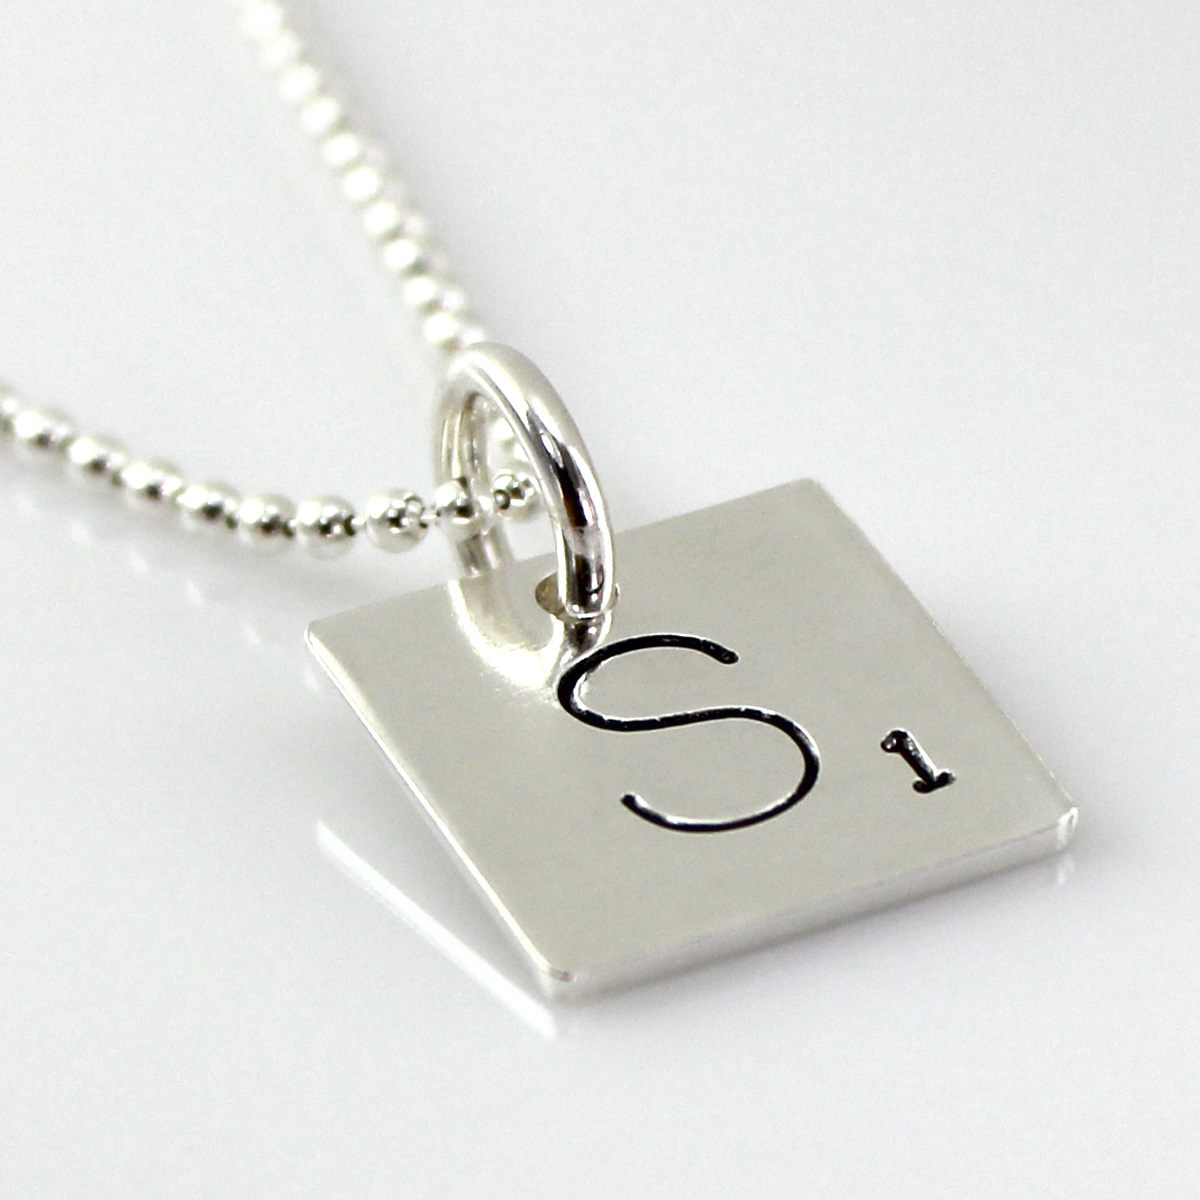 Scrabble Tile Inspired Hand Stamped and Personalized Necklace